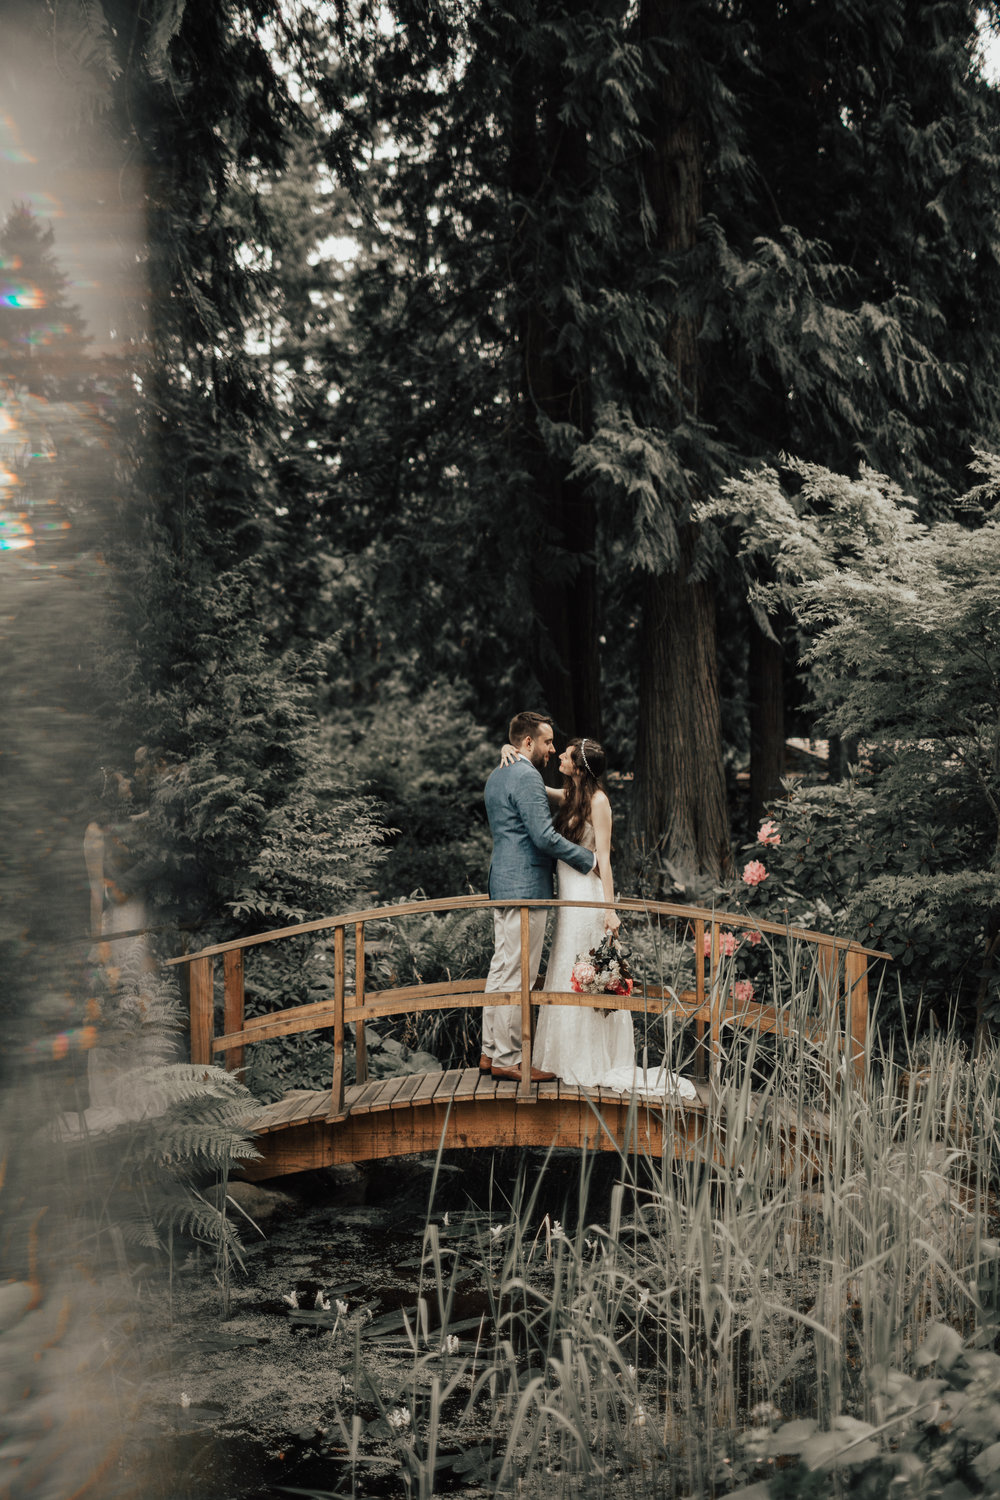 PNW-elopement-wedding-engagement-olympic national park-port angeles-hurricane ridge-lake crescent-kayla dawn photography- photographer-photography-kayladawnphoto-105.jpg